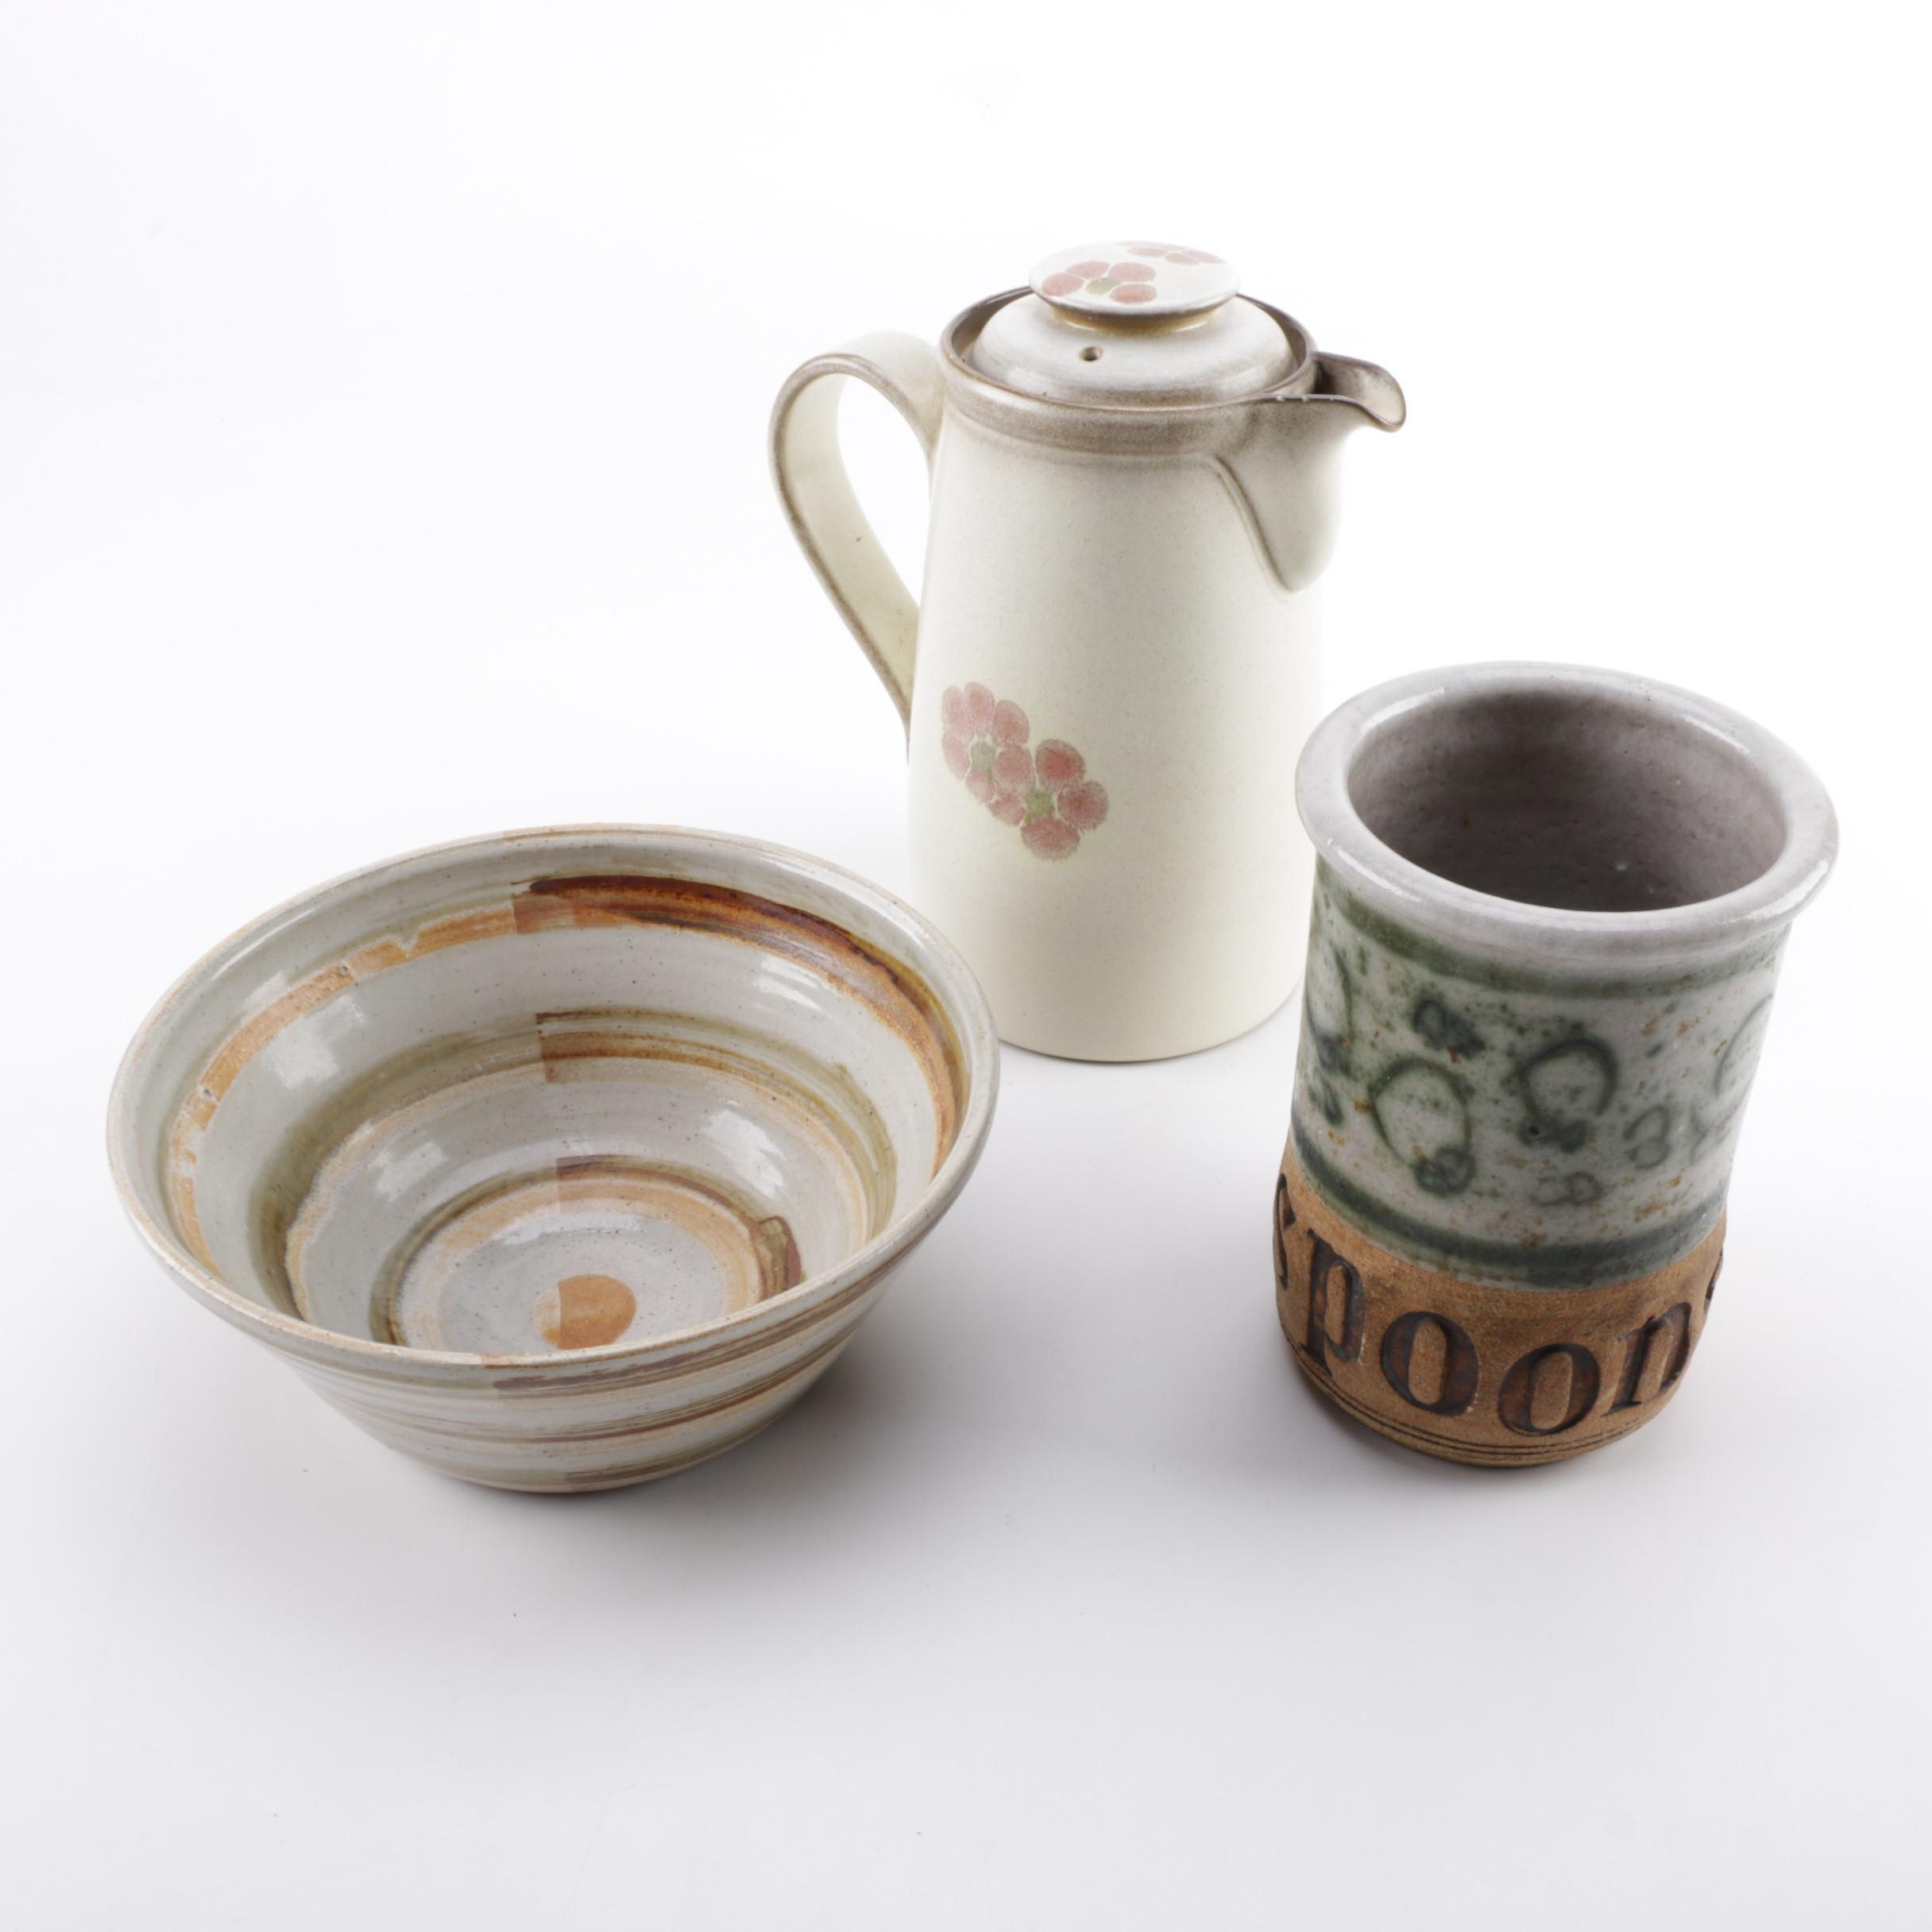 Vintage Denby Stoneware and Art Pottery